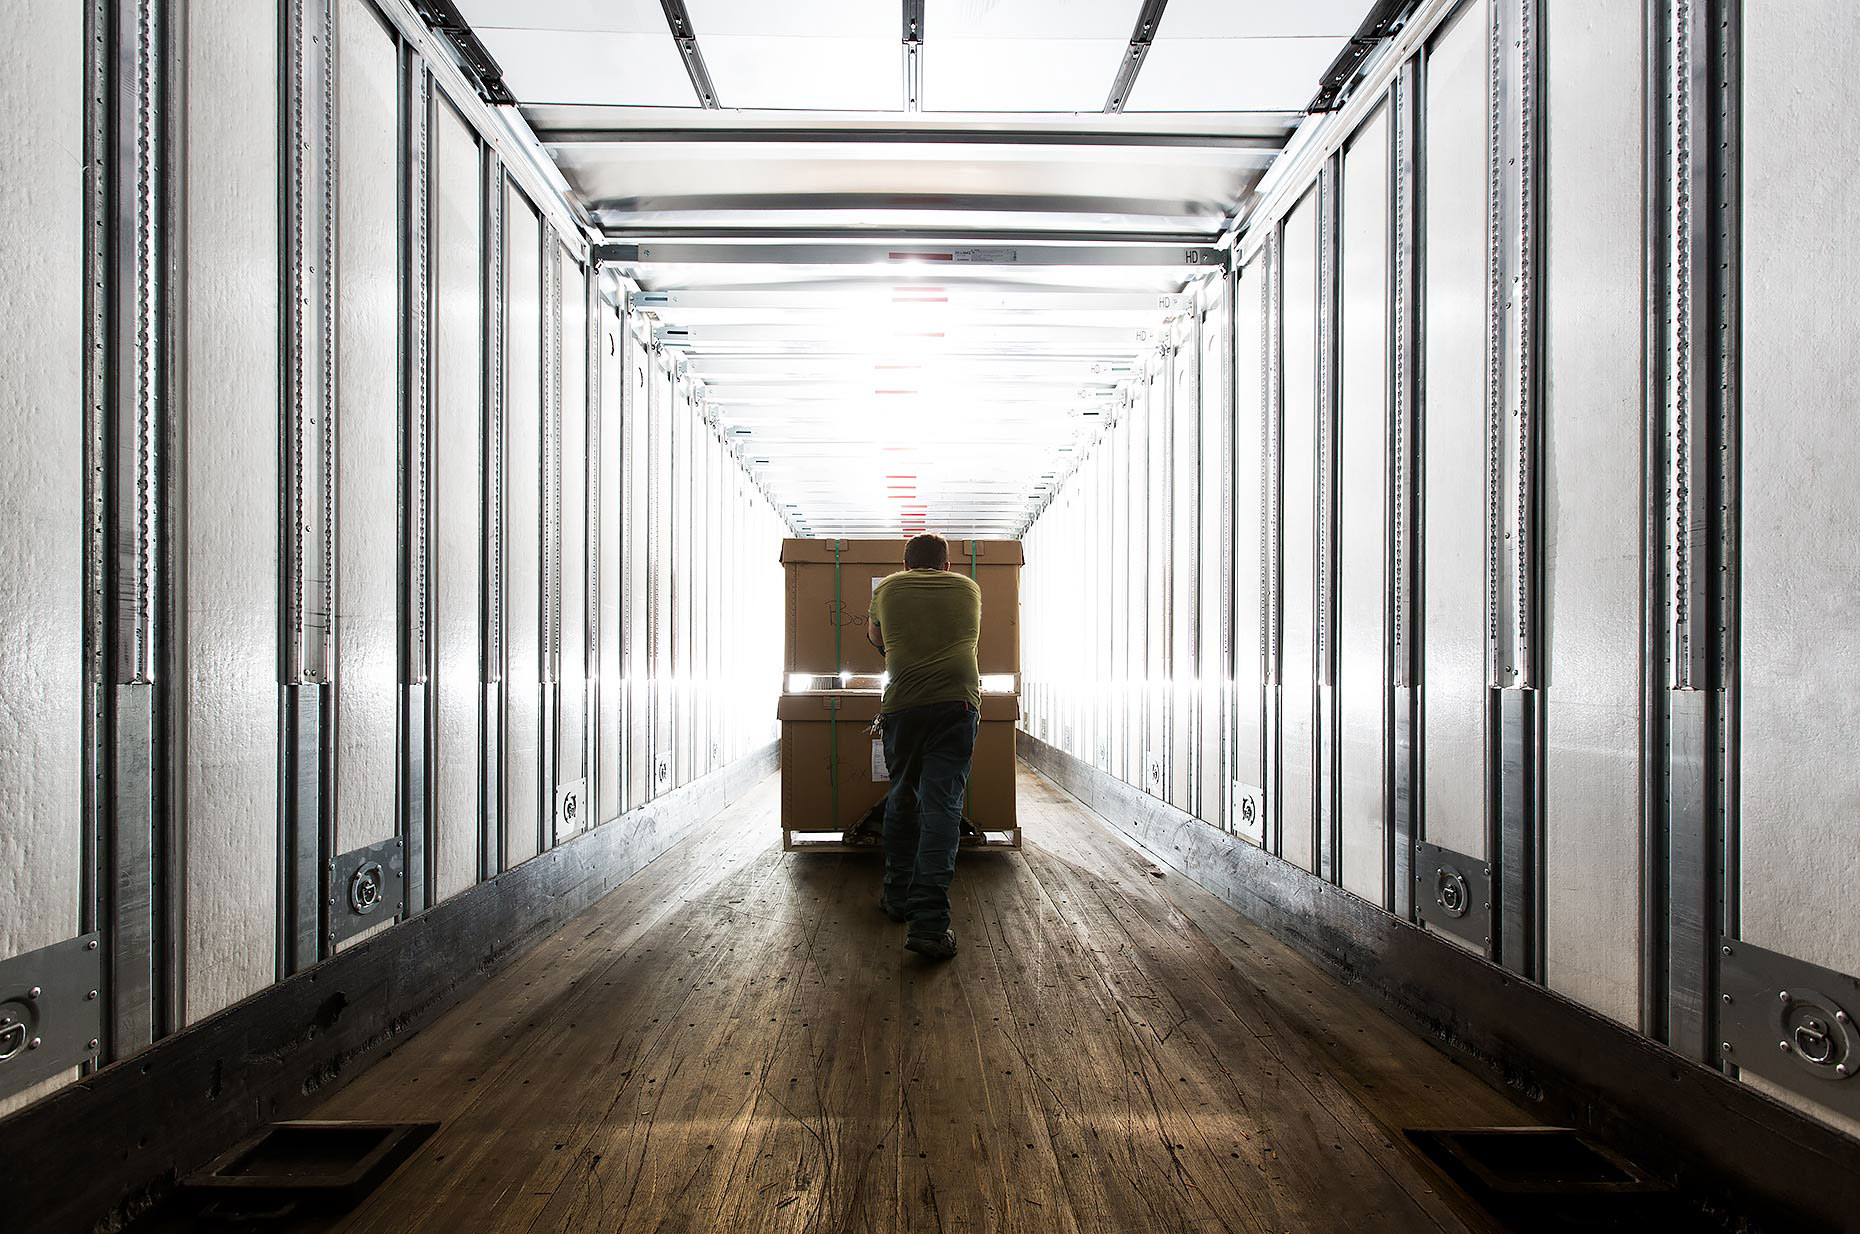 Warehouse worker pushes a load of boxes down a hallway |  Scott Gable industrial photographer